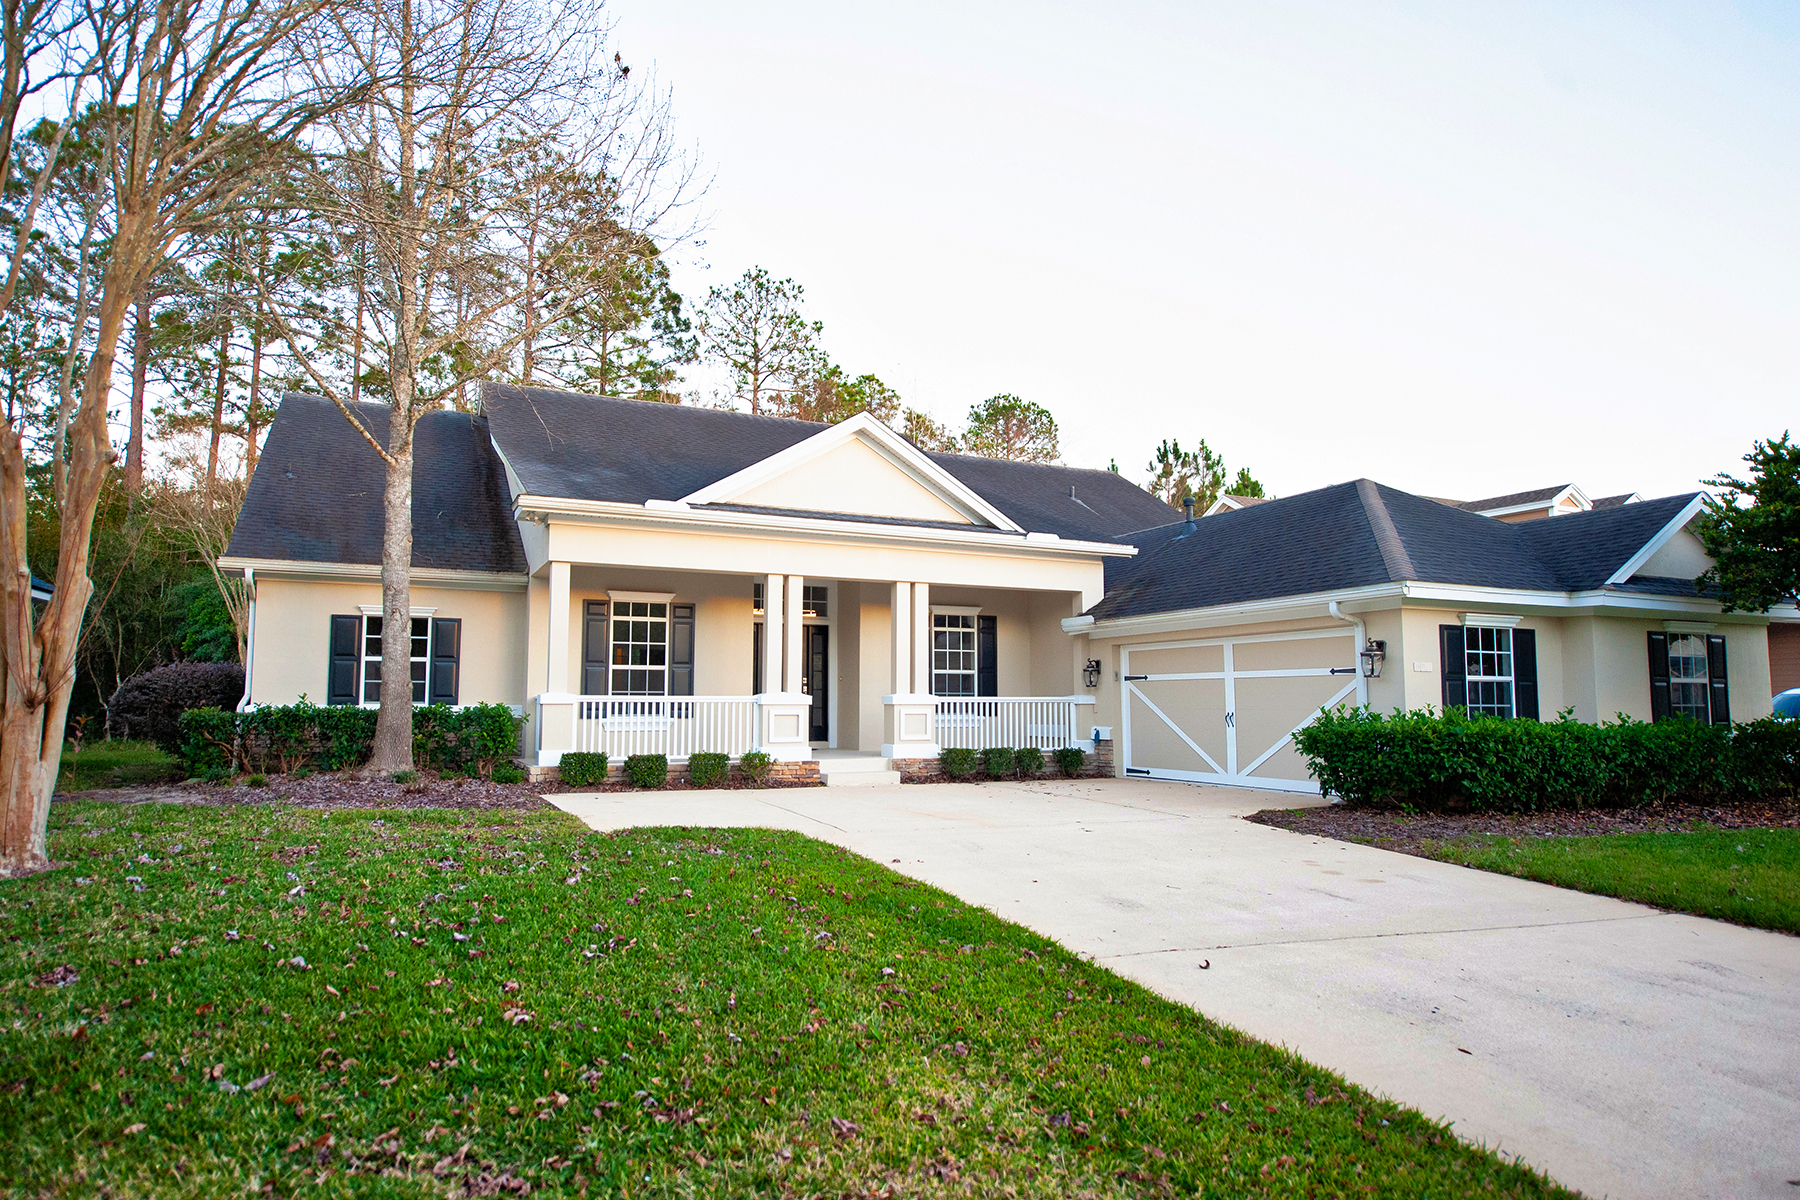 Single Family Homes for Sale at Eagle Point Drive 808 Eagle Point Dr St. Augustine, Florida 32092 United States